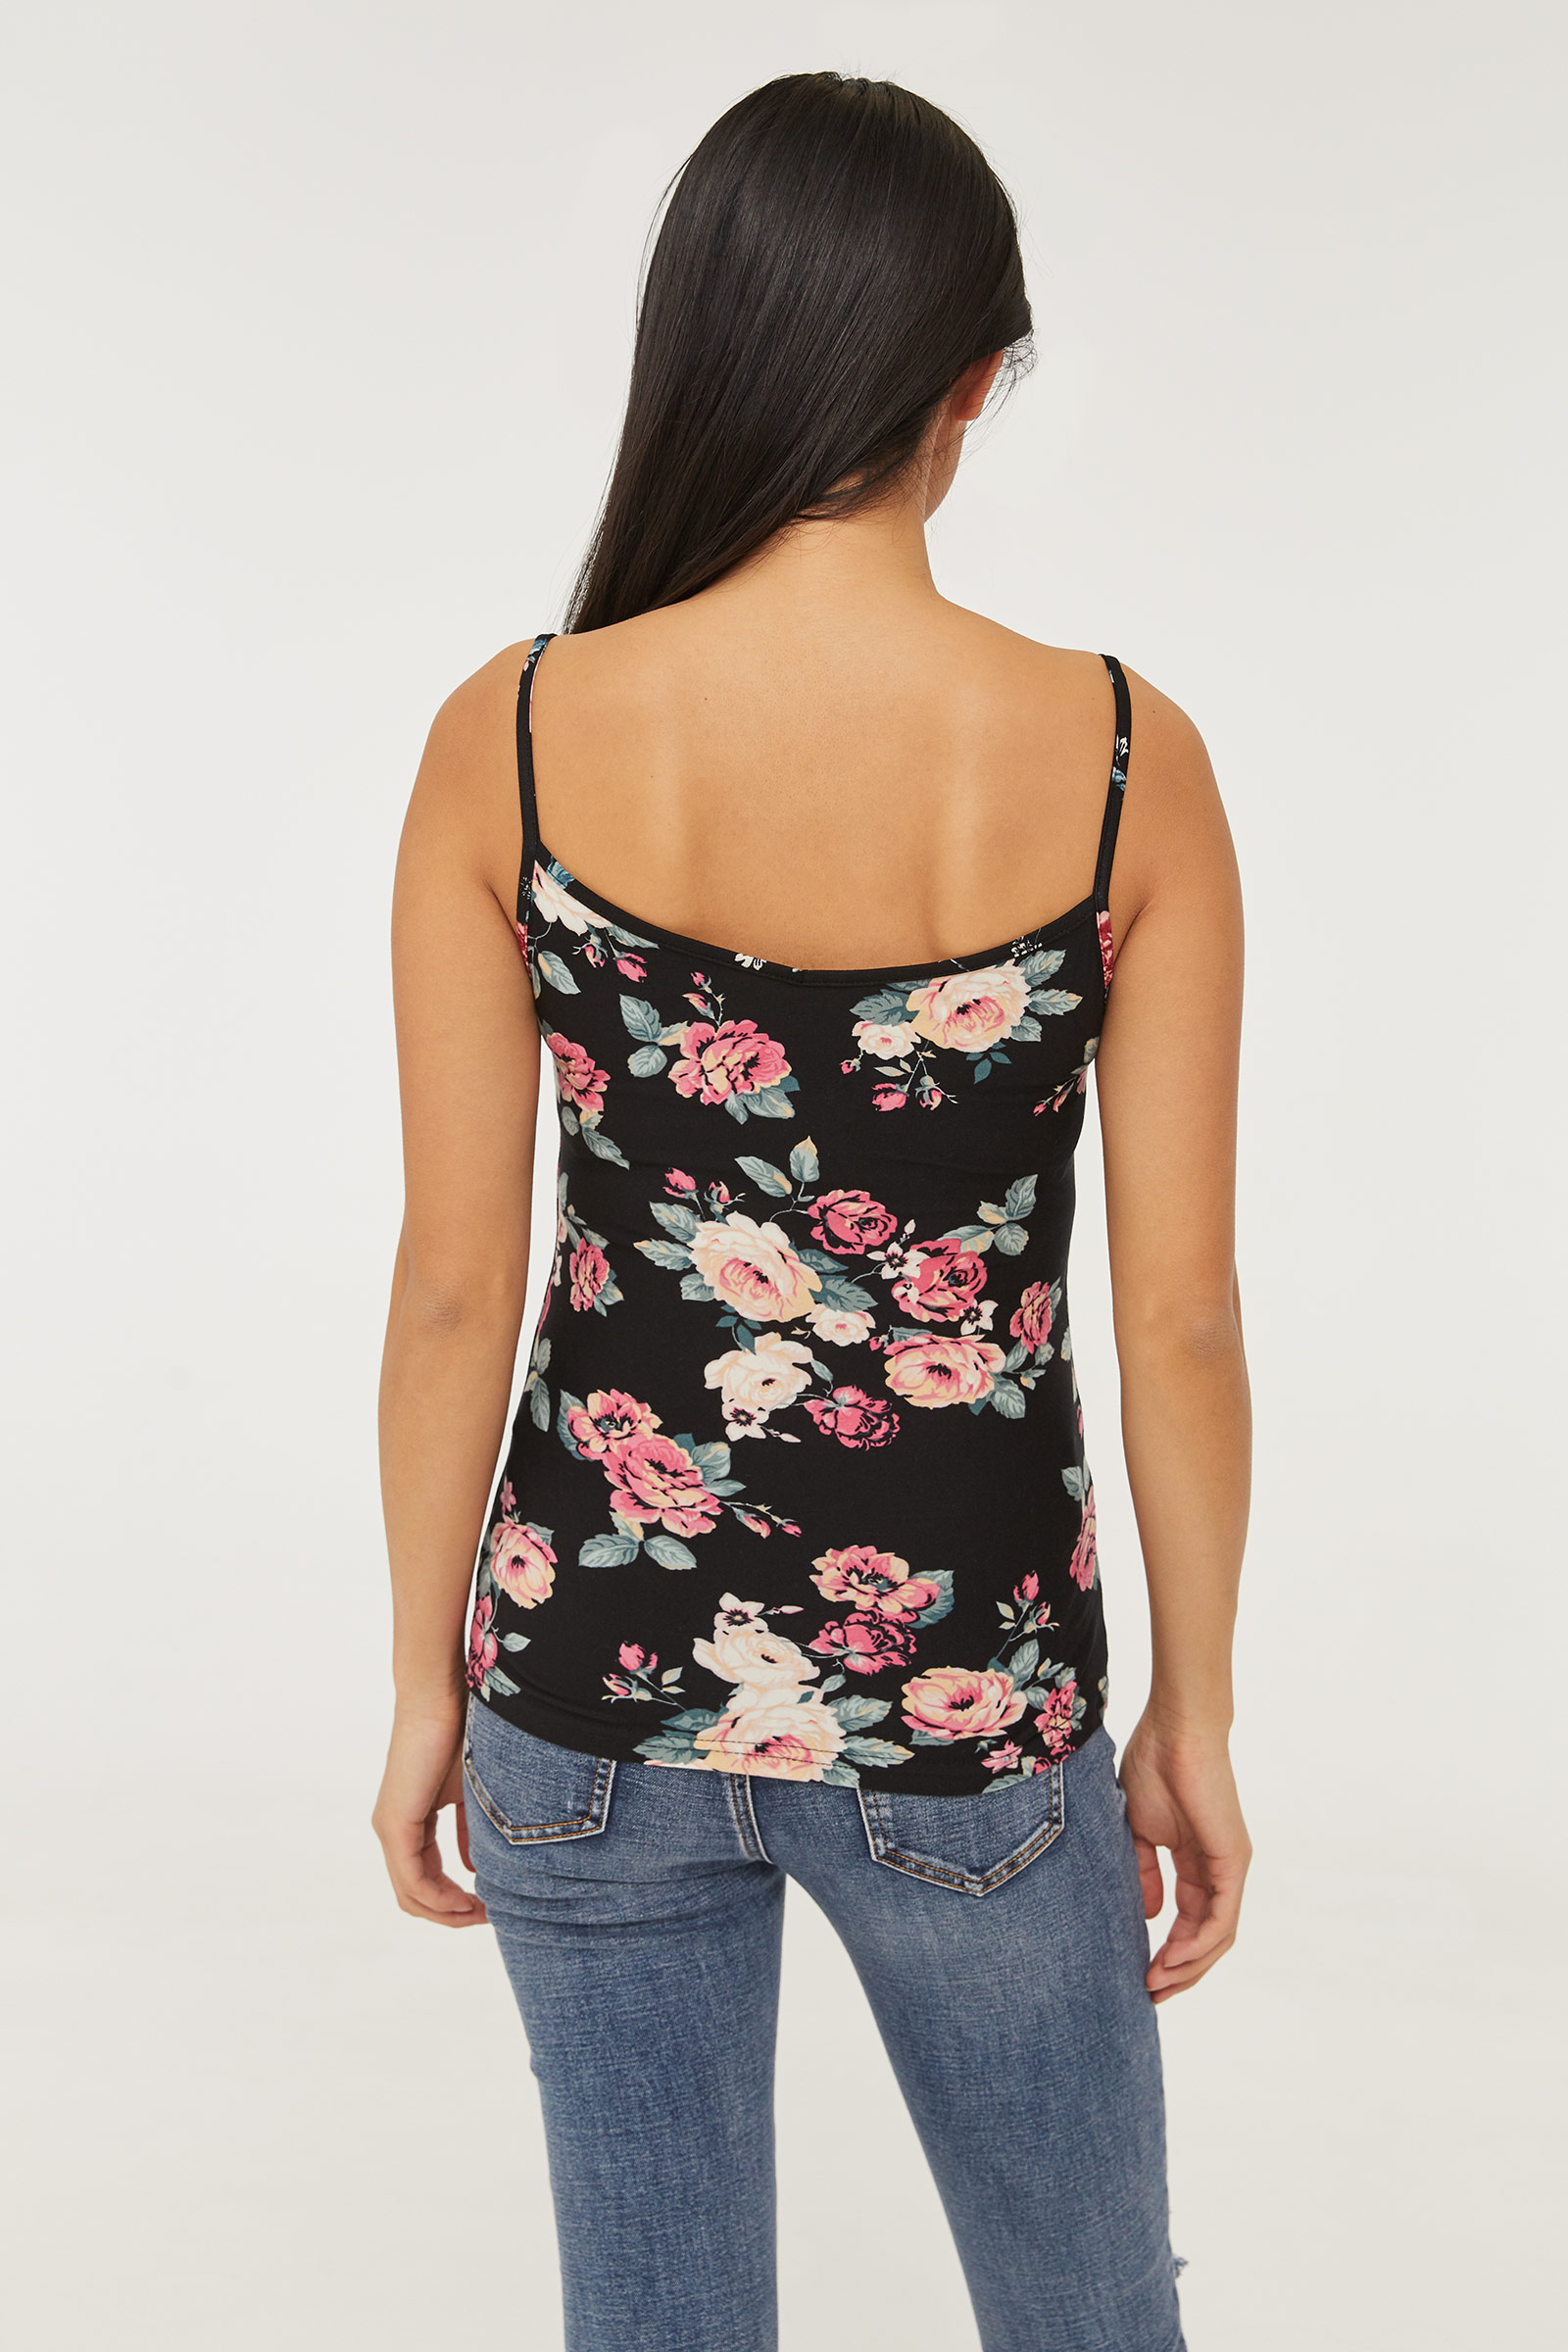 Basic Softie Floral Tank Top